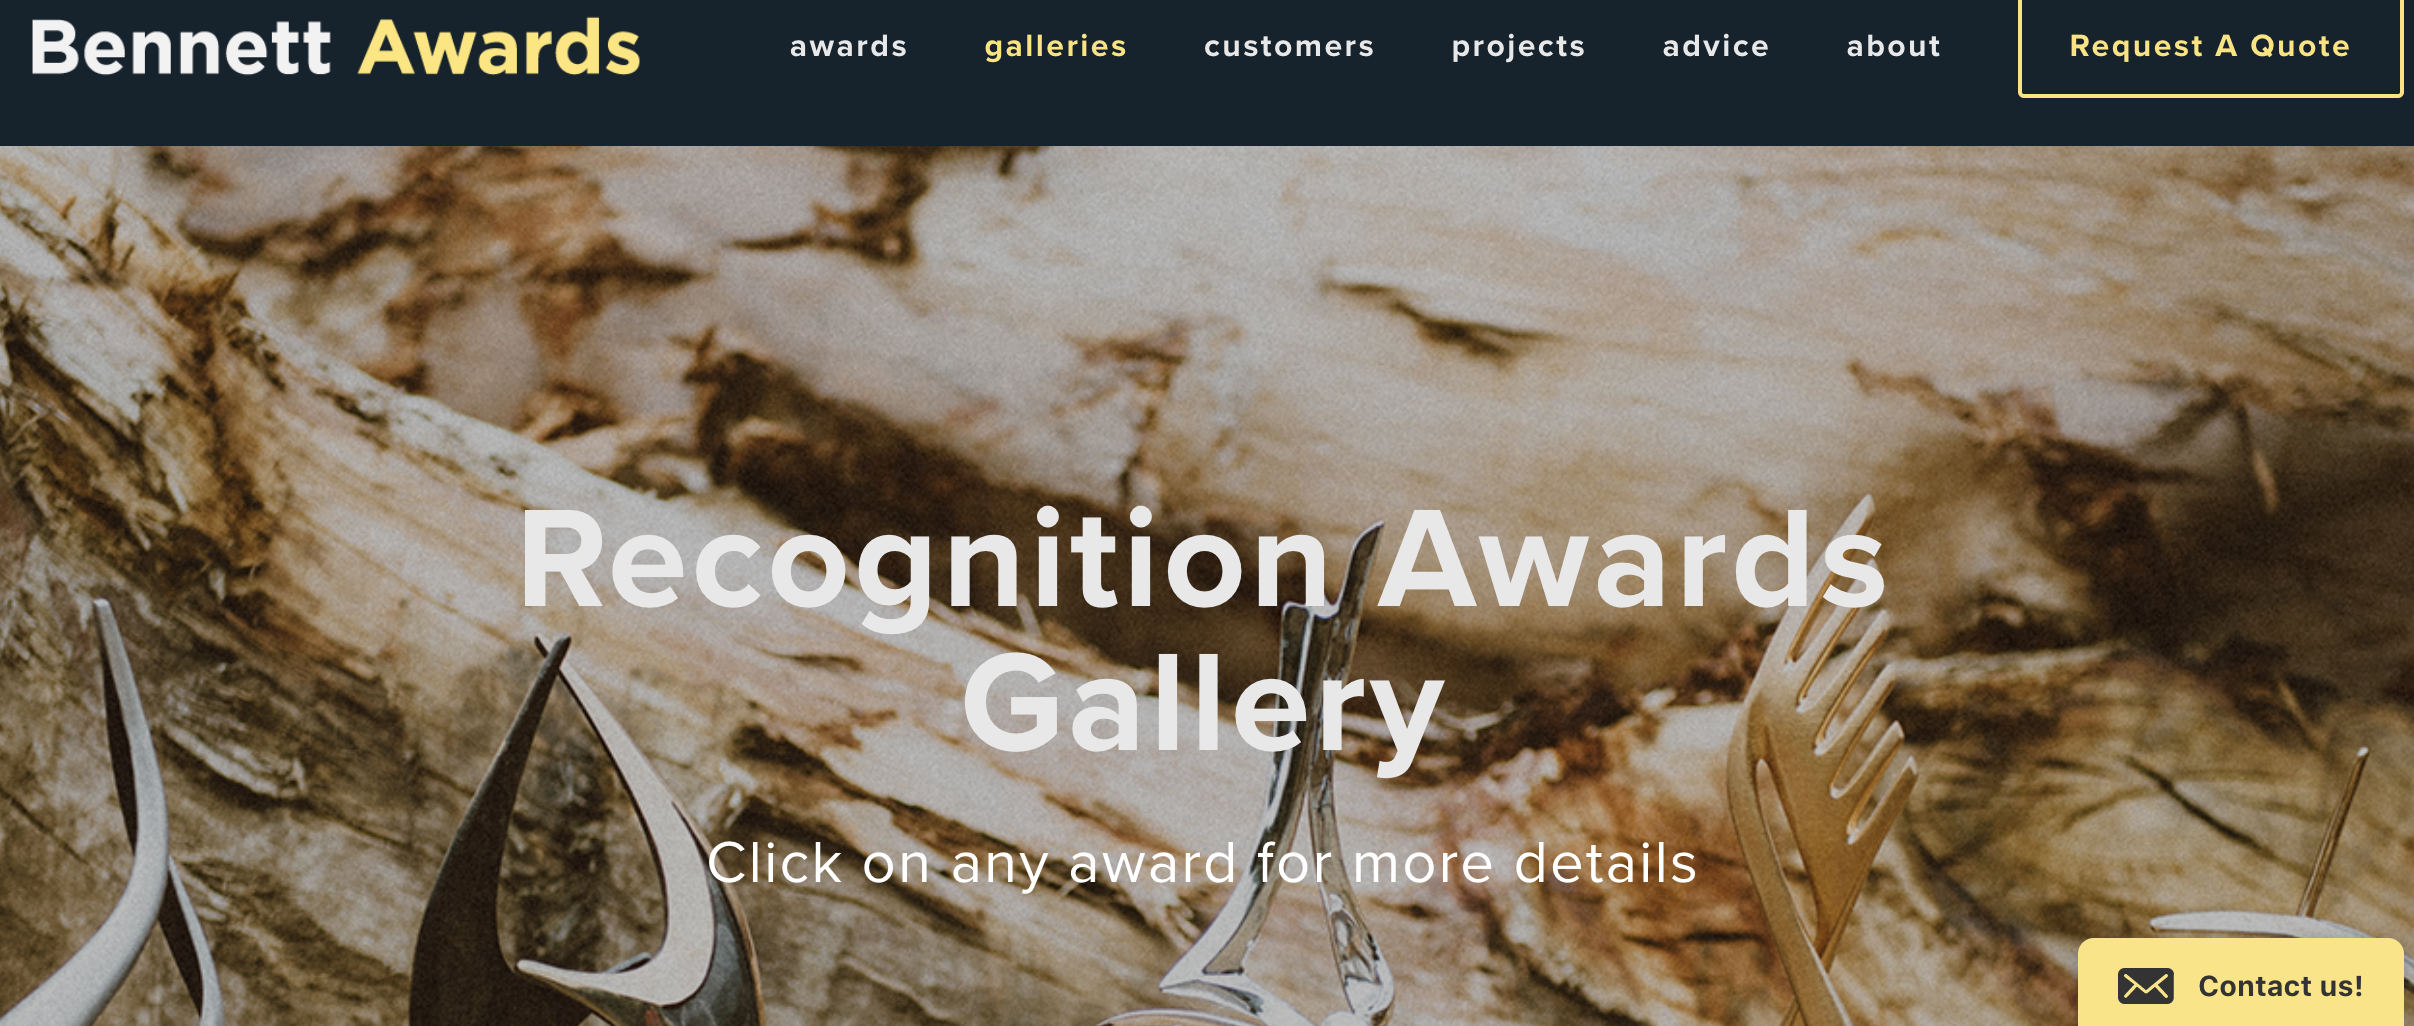 A gallery on the Bennett Awards Squarespace site, with the Olark offline email form in the lower right-hand corner.